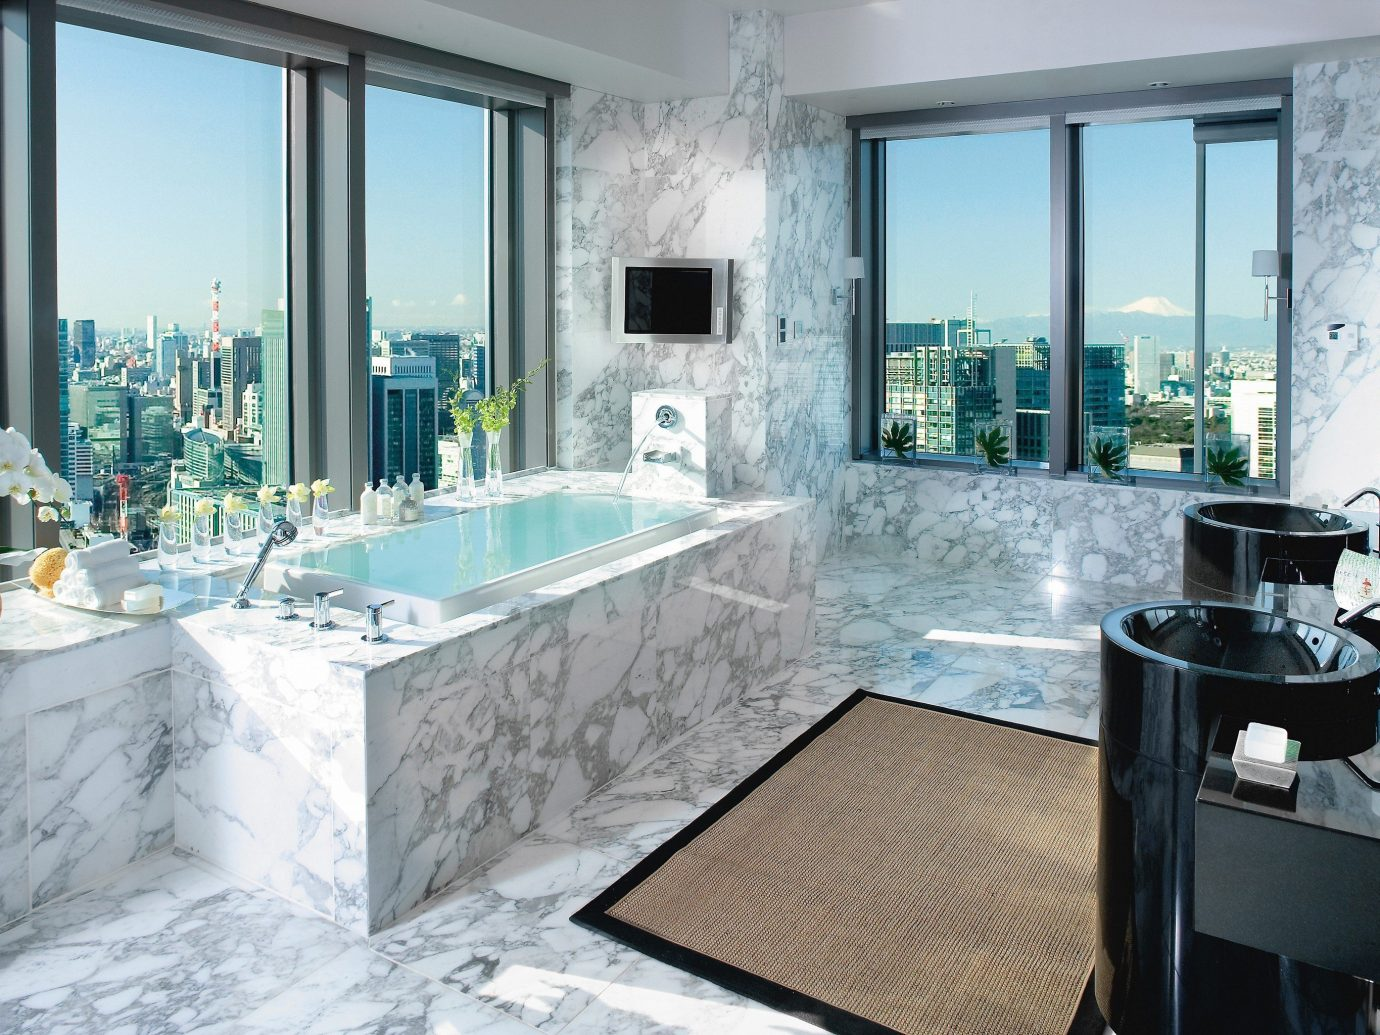 Hotels Japan Romance Tokyo window indoor swimming pool room floor property estate home interior design bathroom jacuzzi bathtub mansion condominium living room Design Suite Villa Modern furniture